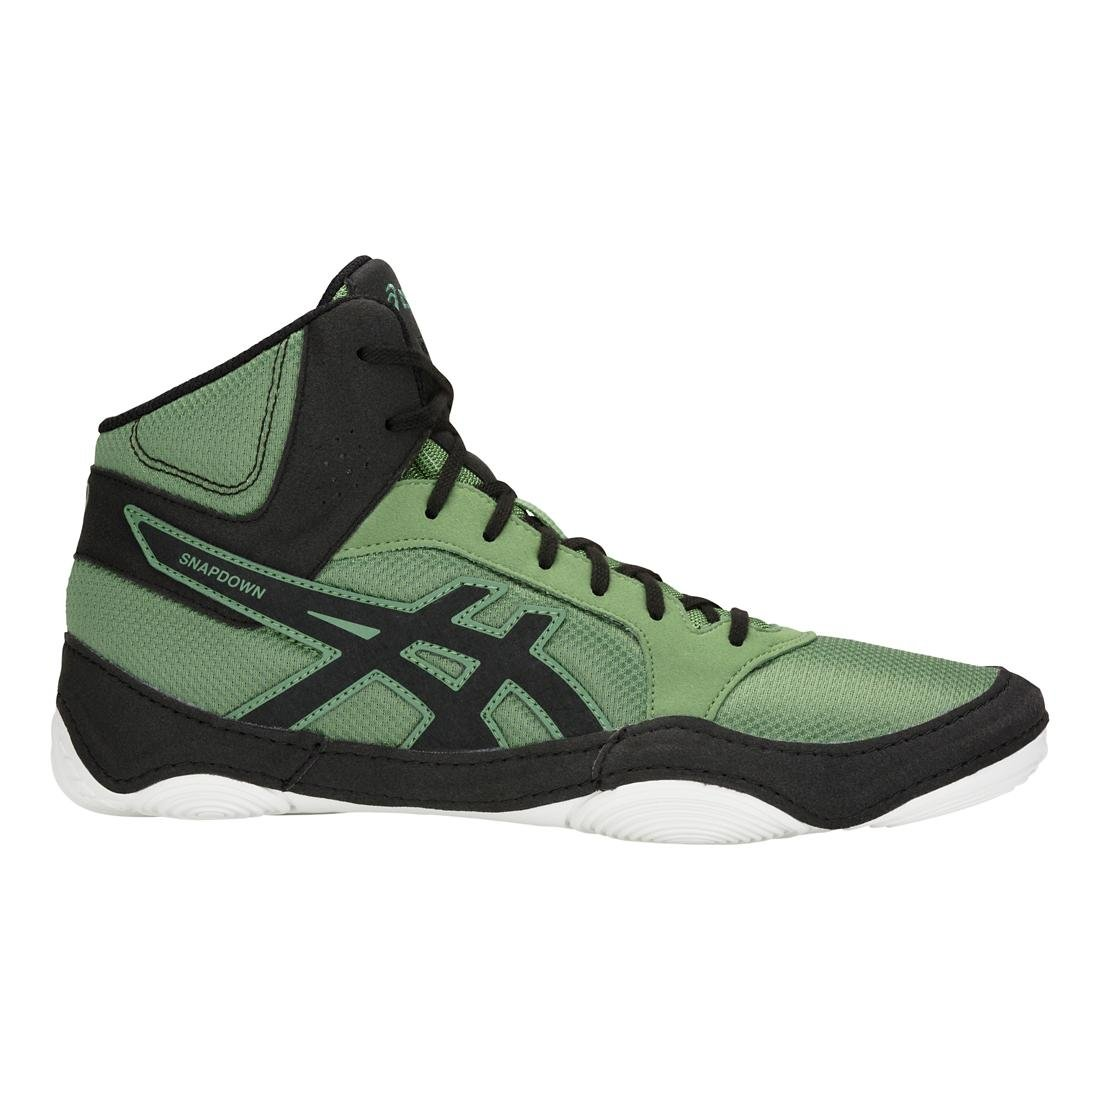 ASICS Mens Snapdown 2 Wrestling Shoe, J703Y